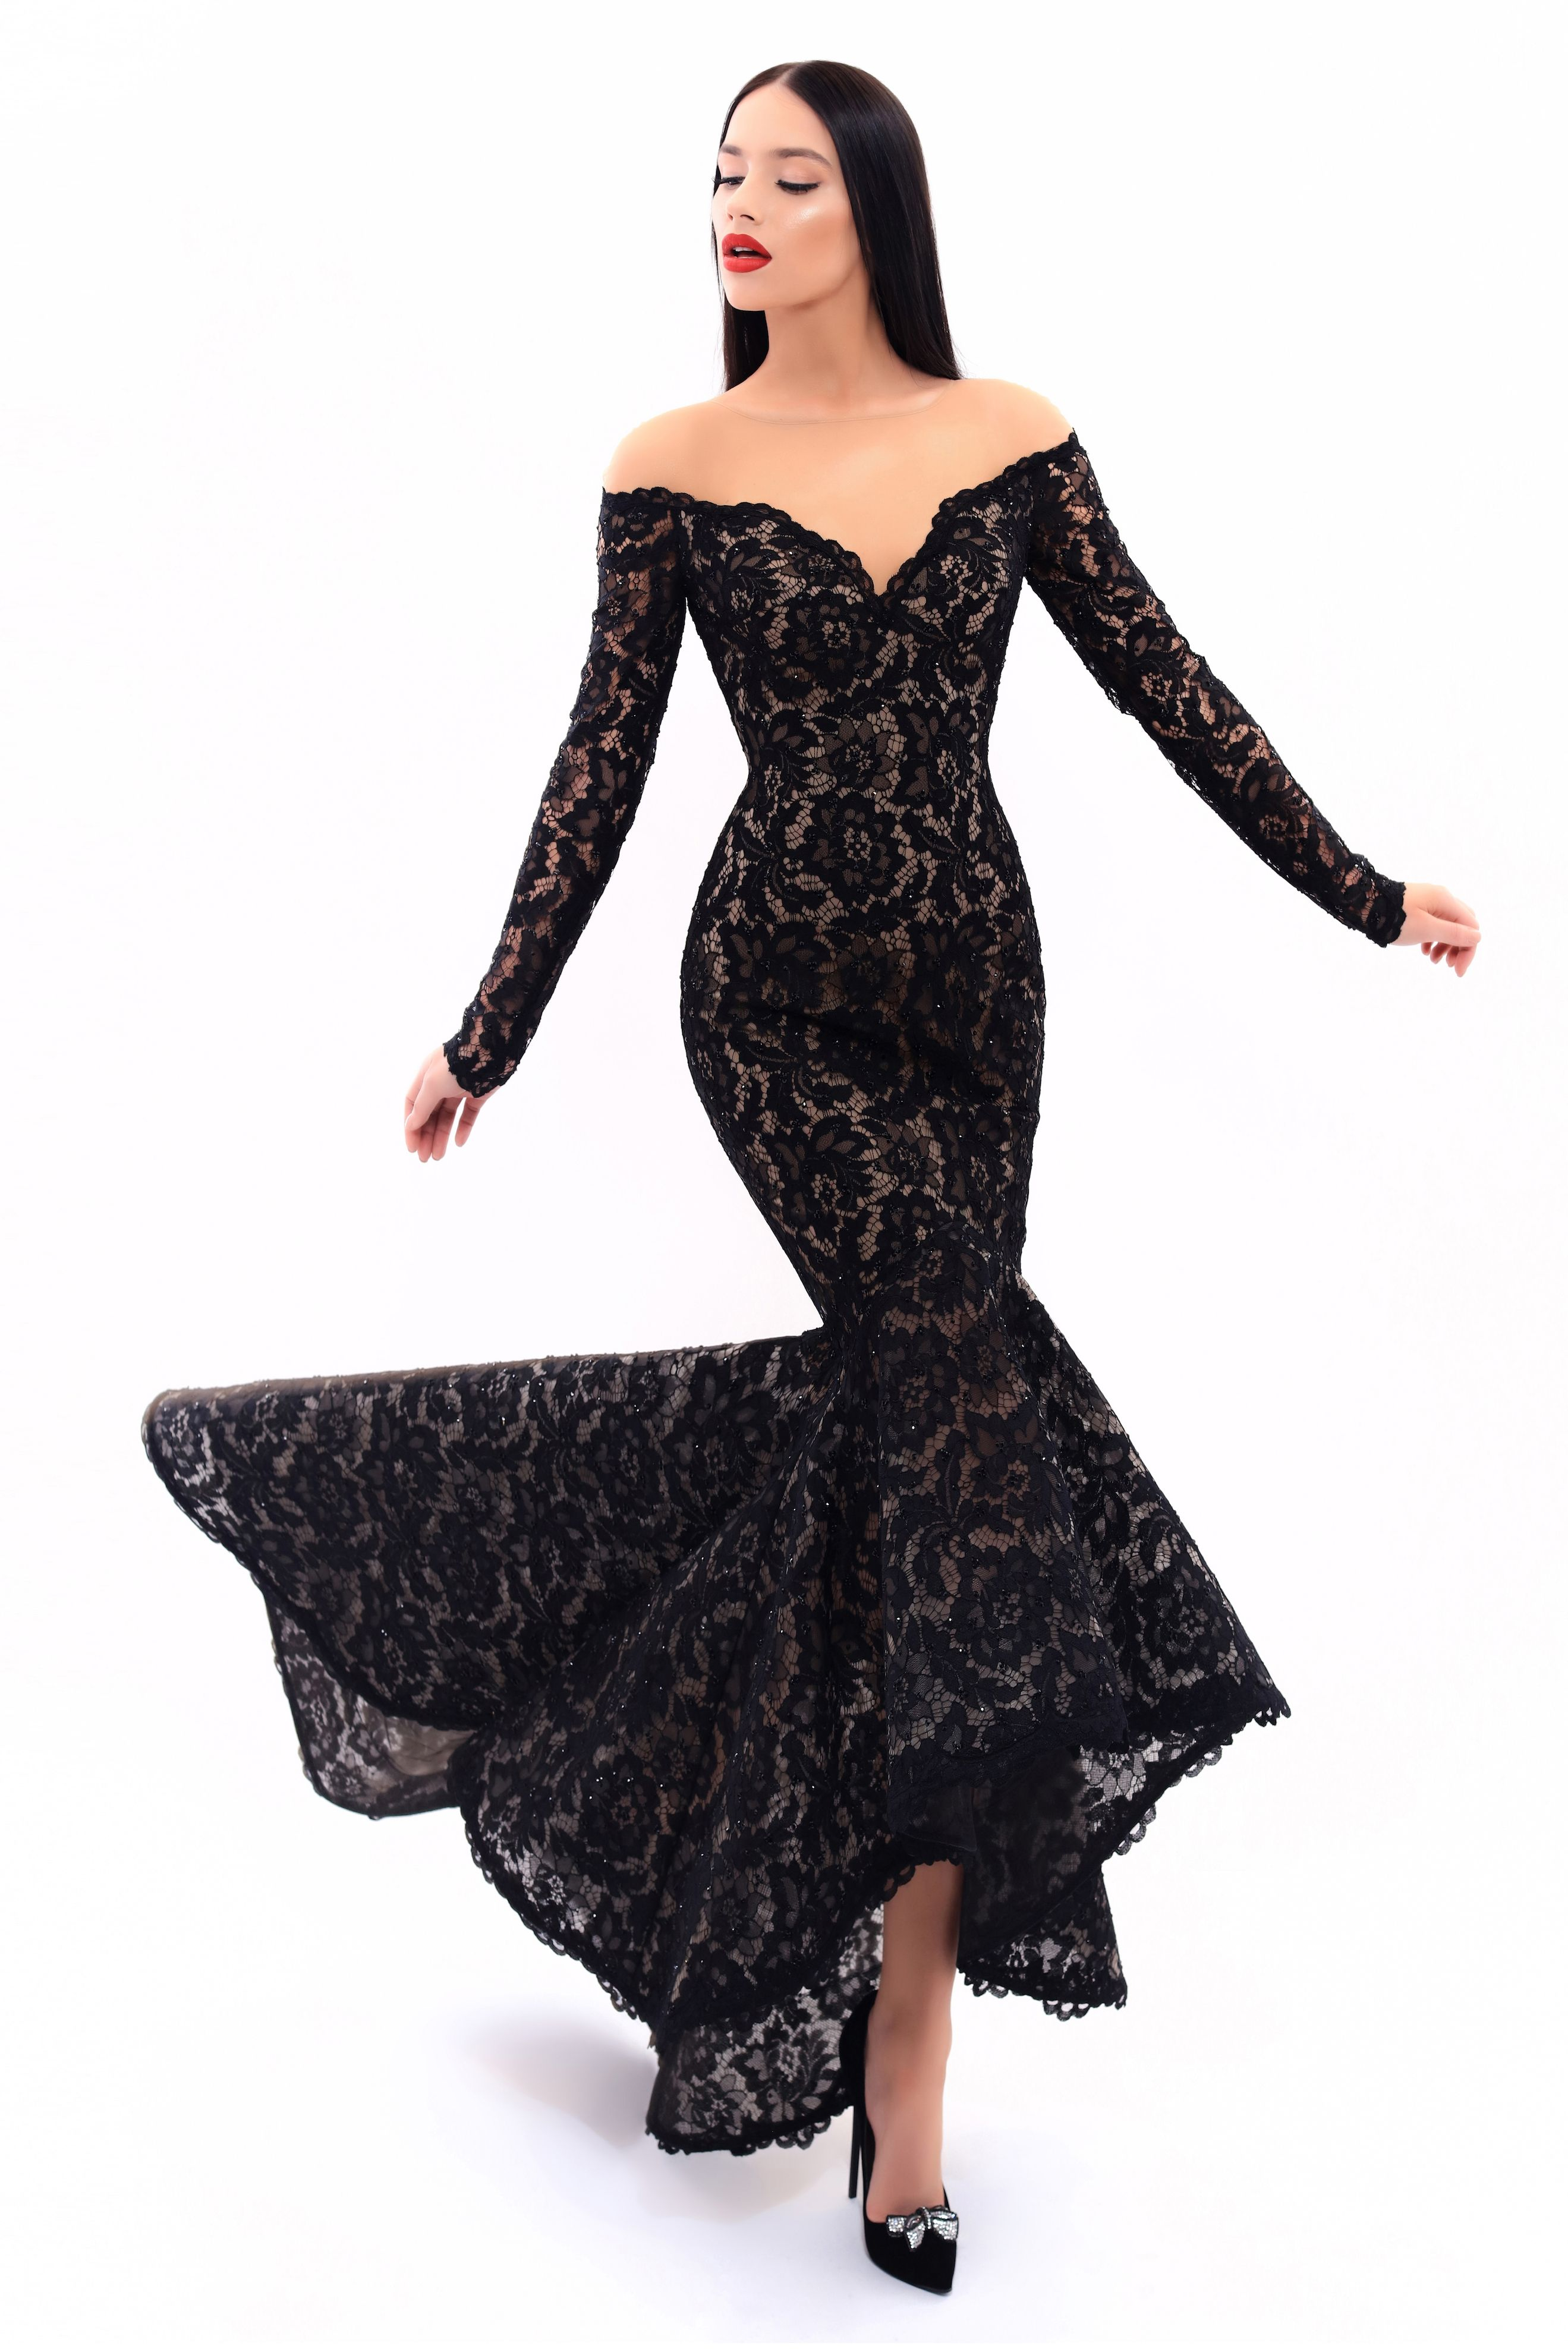 f99f308bb4b9 Tarik Ediz- MIRACLE Collection 2017 Fall/Winter Style #93310 Long Black  Lace Evening Gown. Also available in Navy and Red.